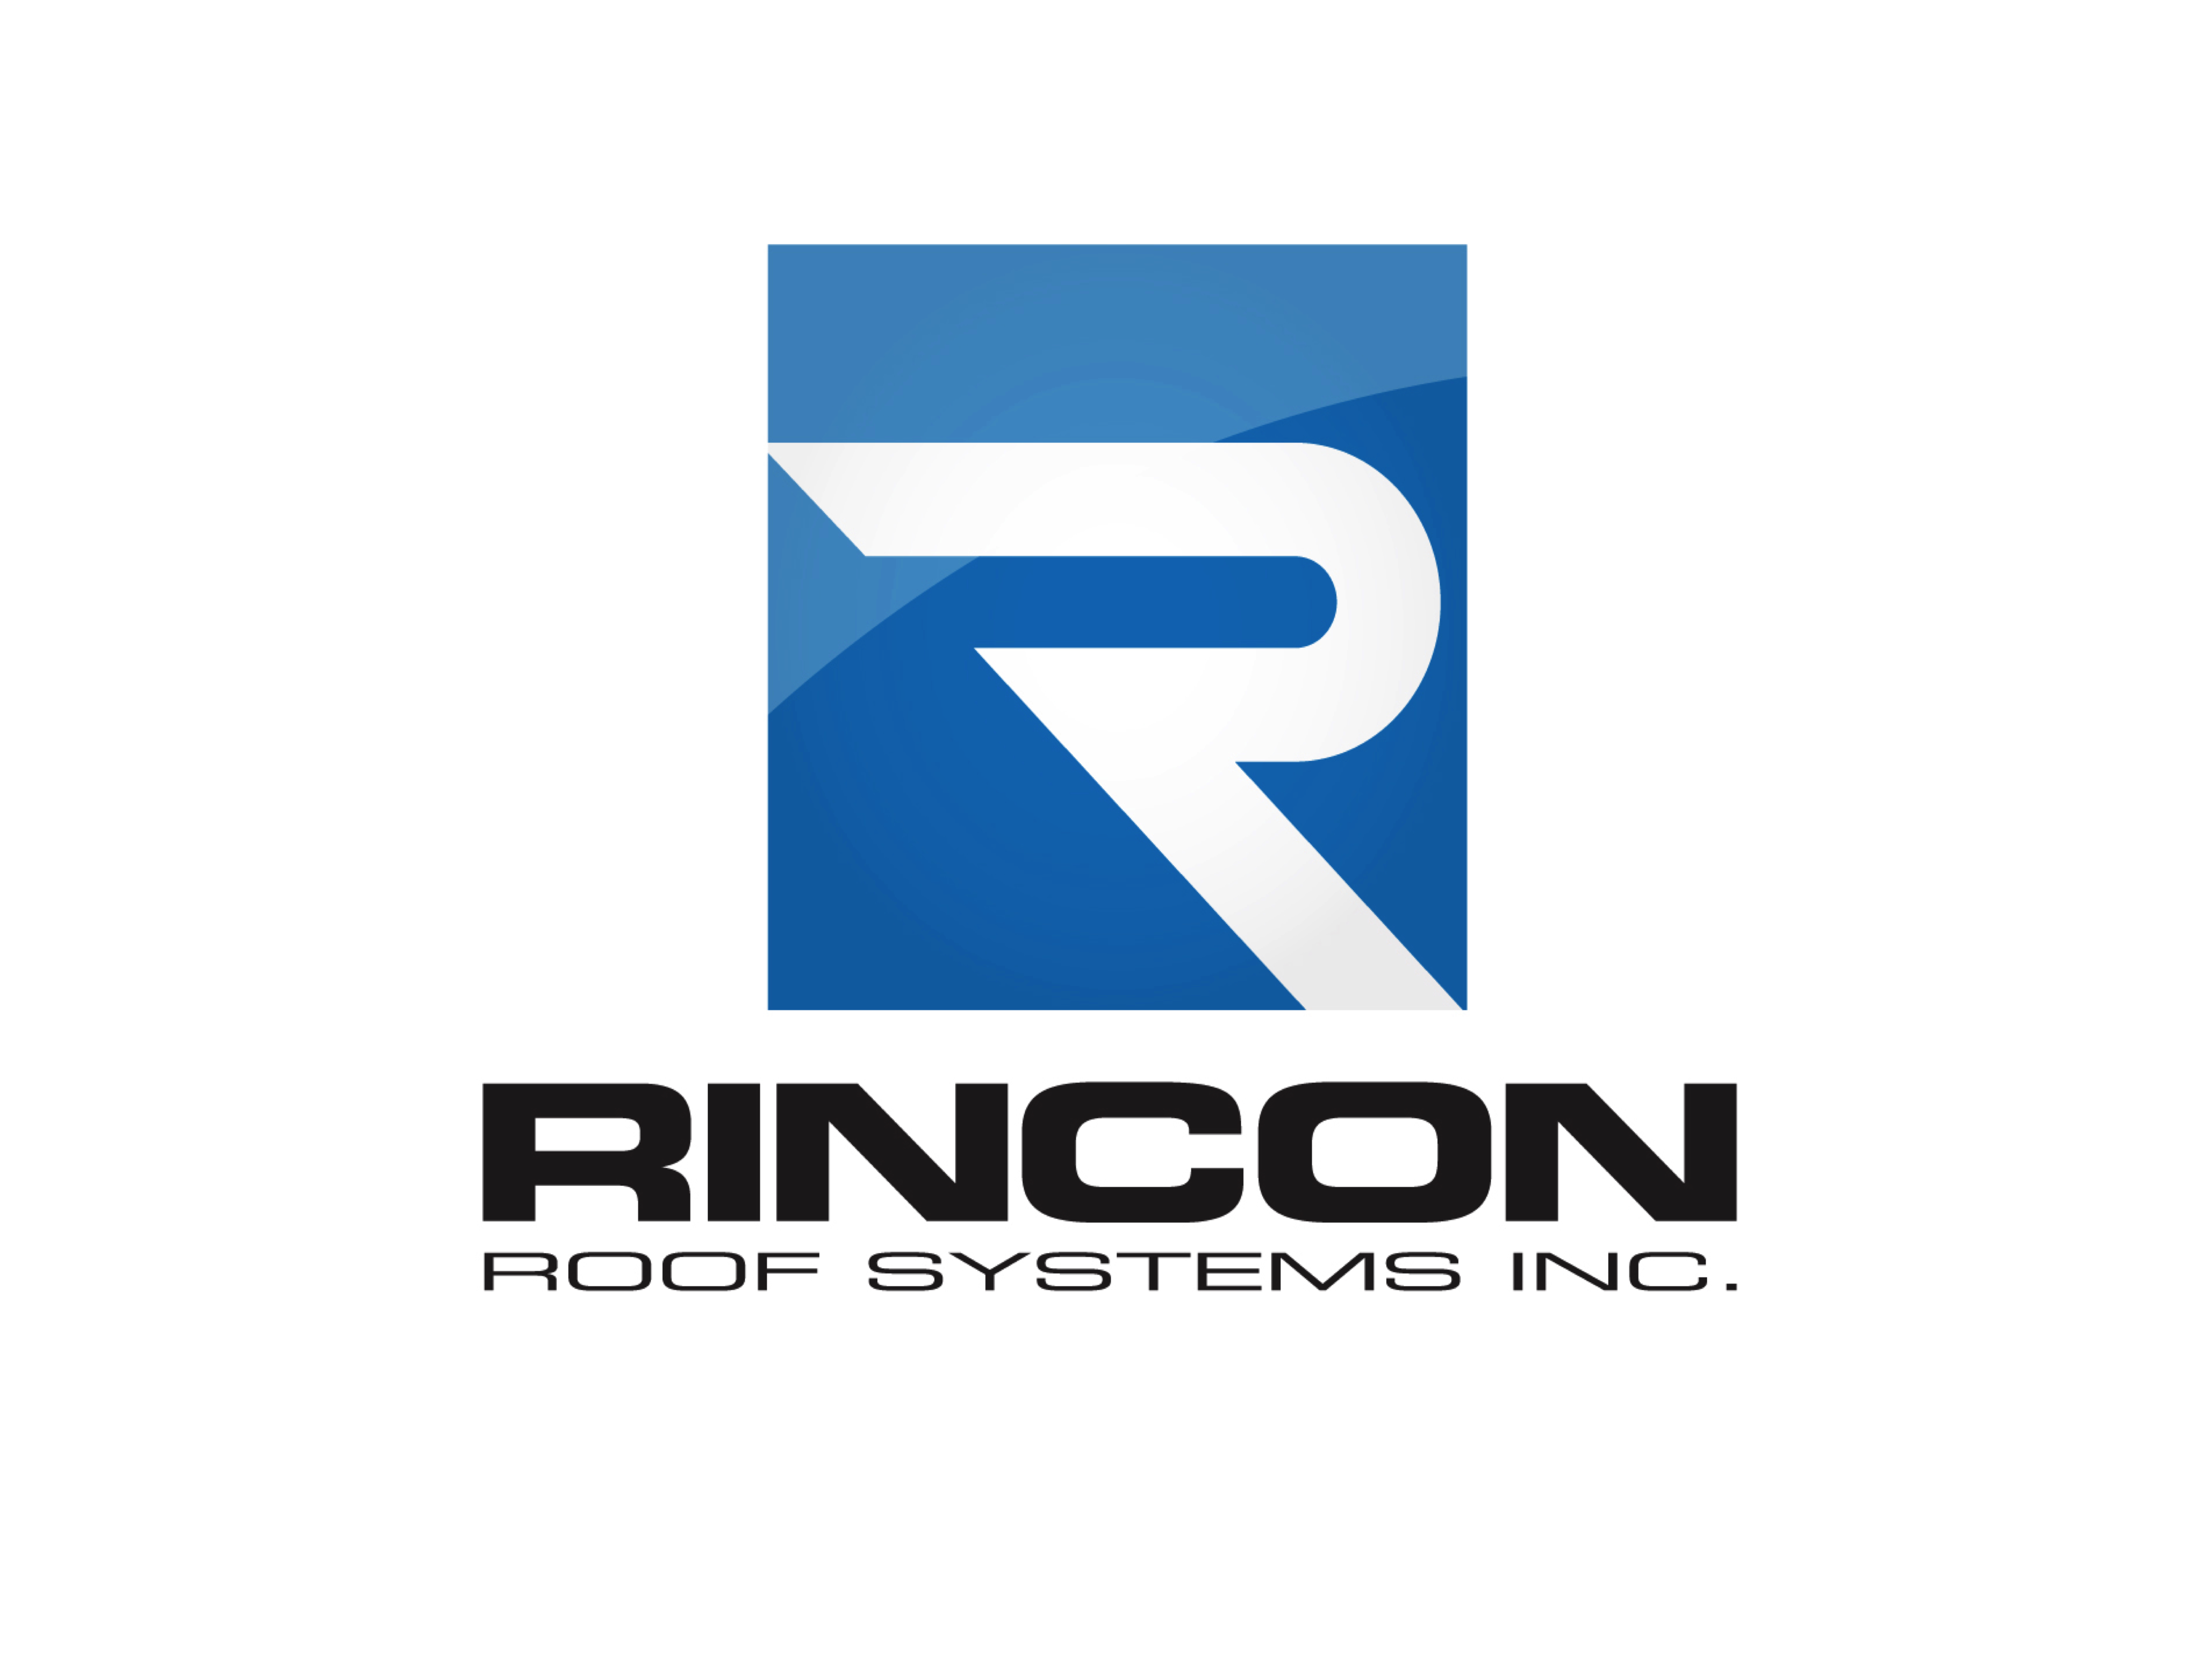 Rincon Roof Systems, Inc